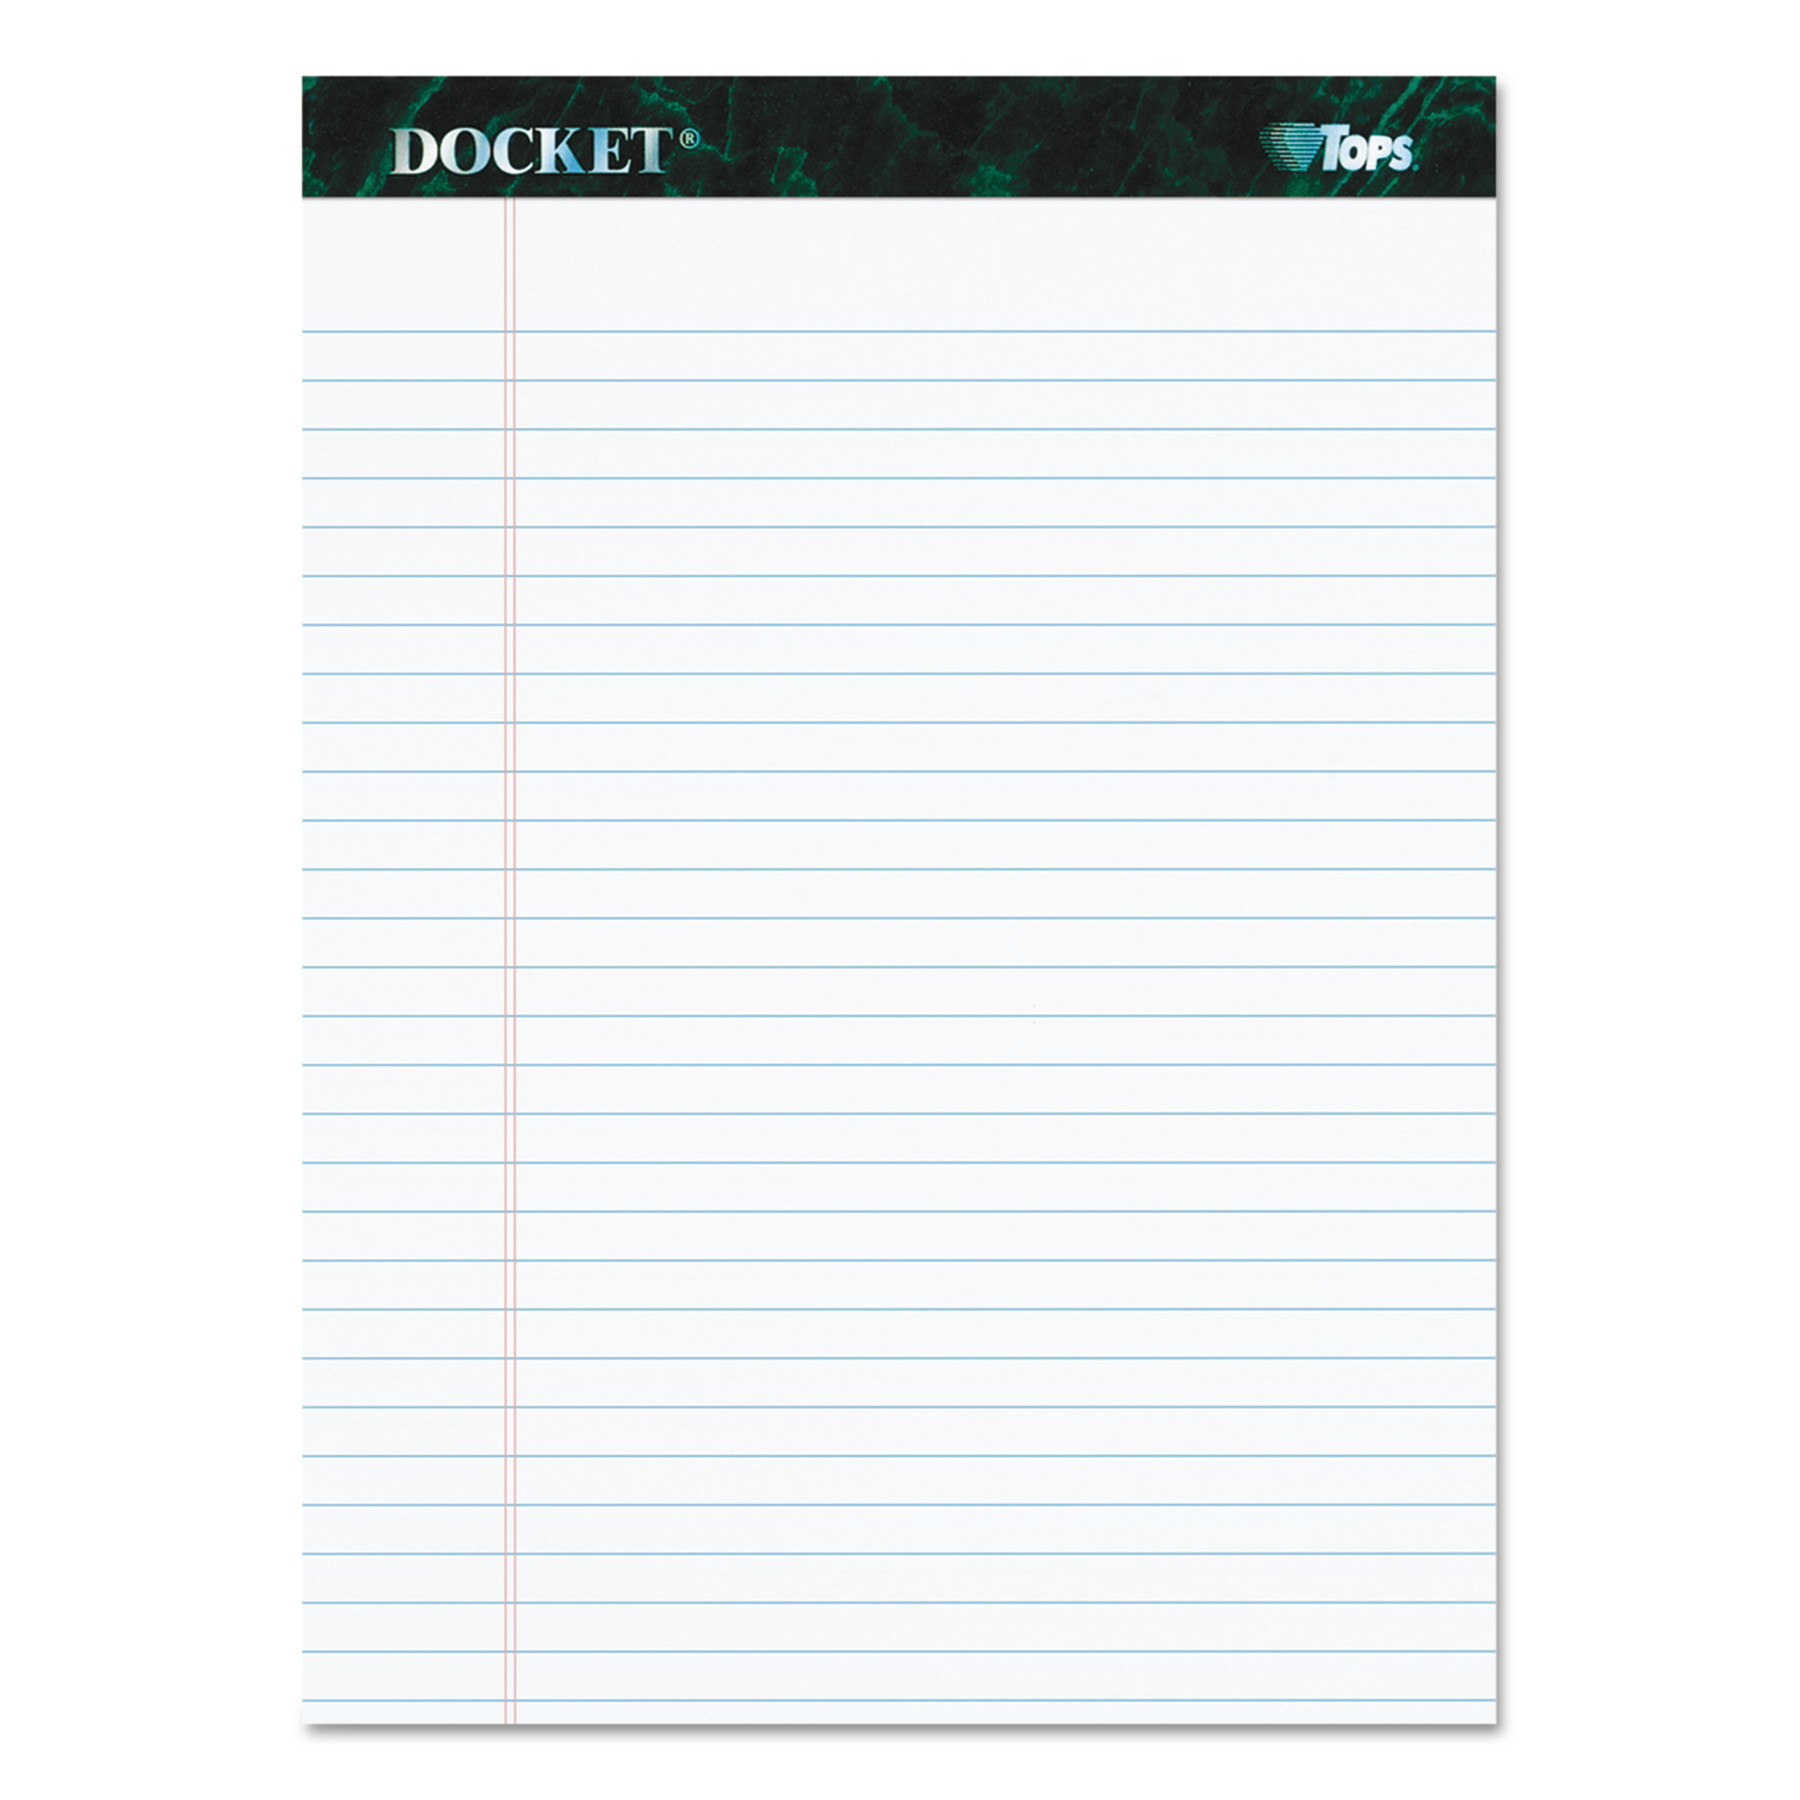 TOPS Docket Ruled Perforated Pads, 8 1/2 x 11 3/4, White, 50 Sheets, Dozen